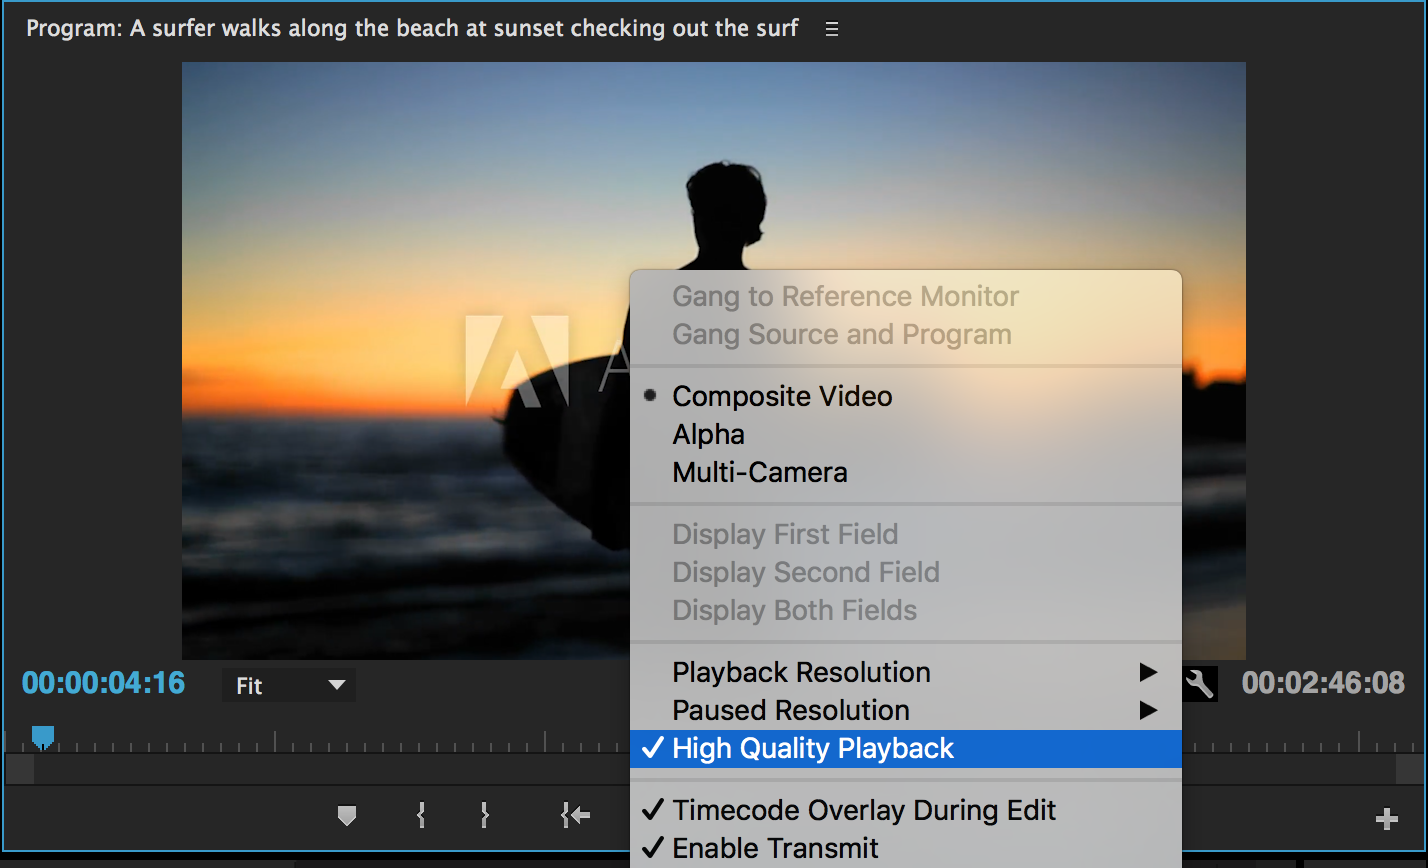 New High Quality Playback Feature